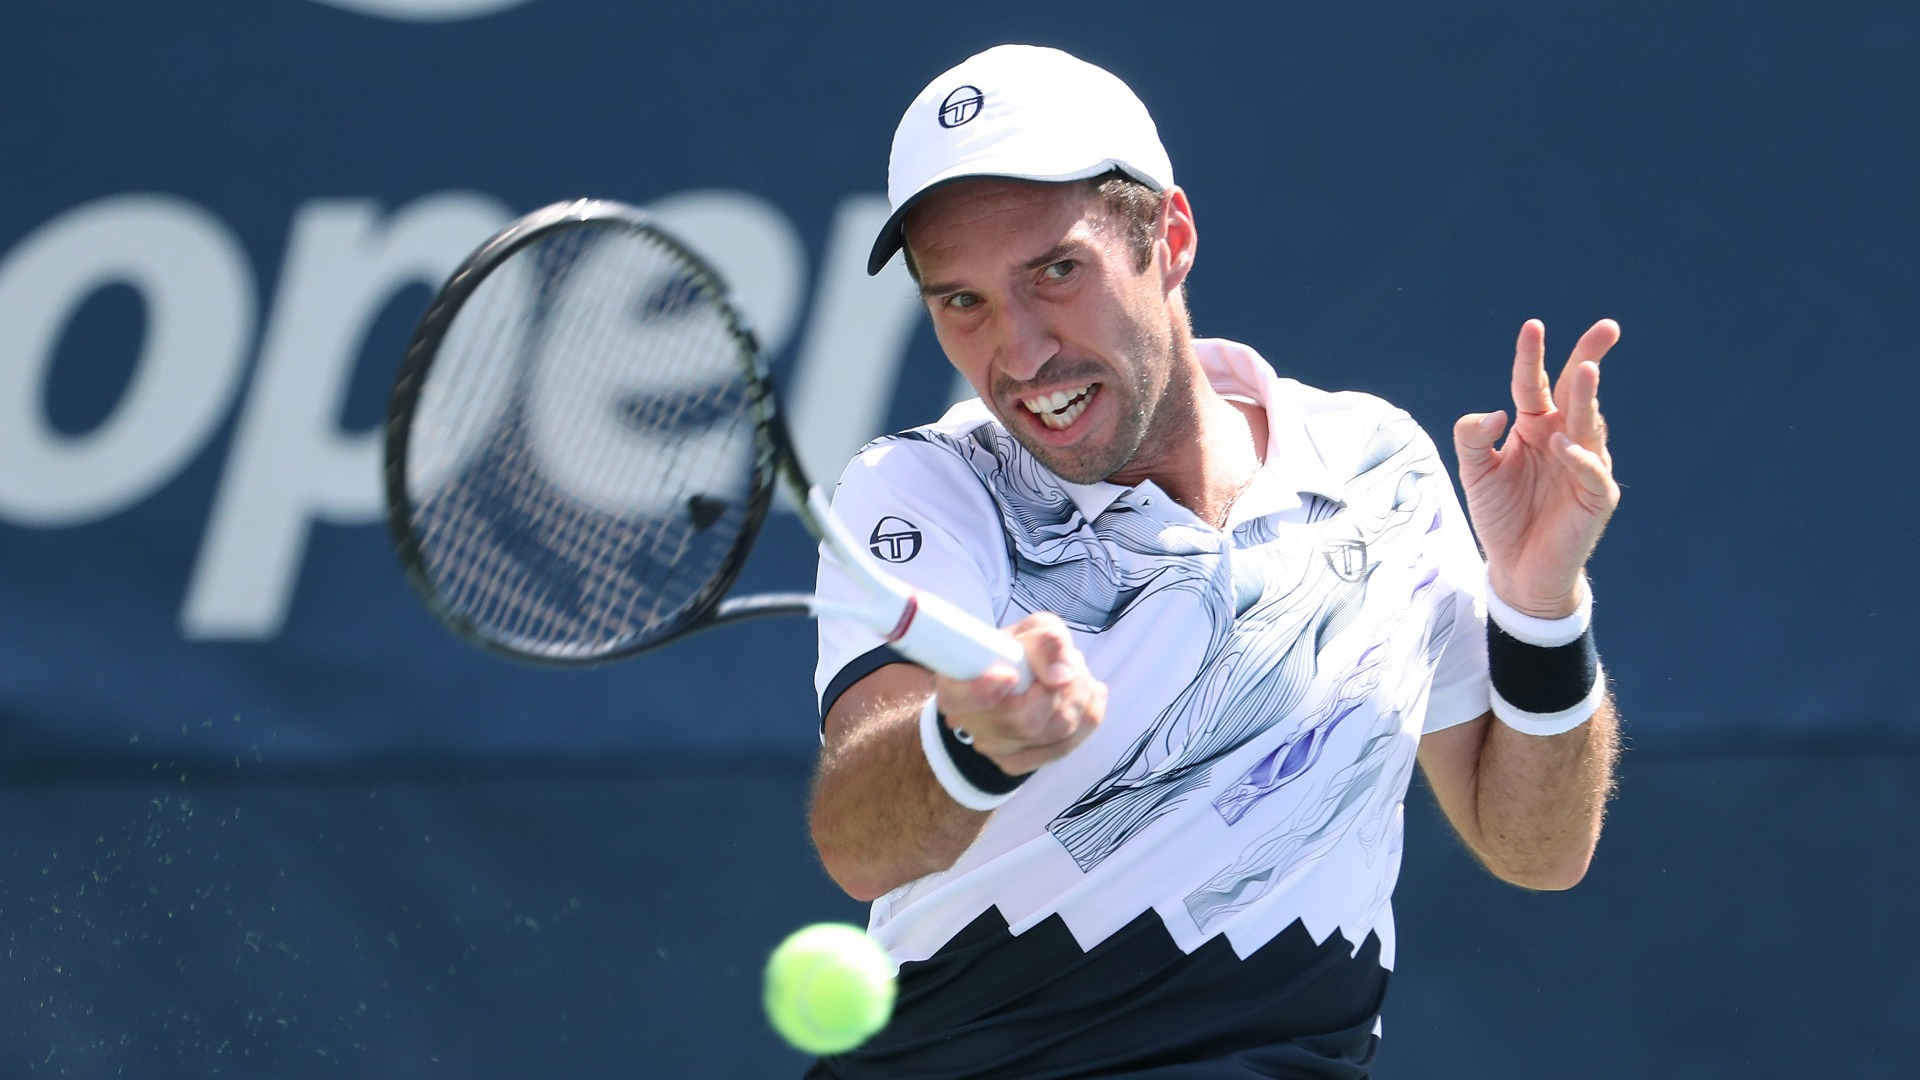 There were contrasting fortunes for two former title winners in Monday's ATP Tour events, with Mikhail Kukushkin advancing in Russia.